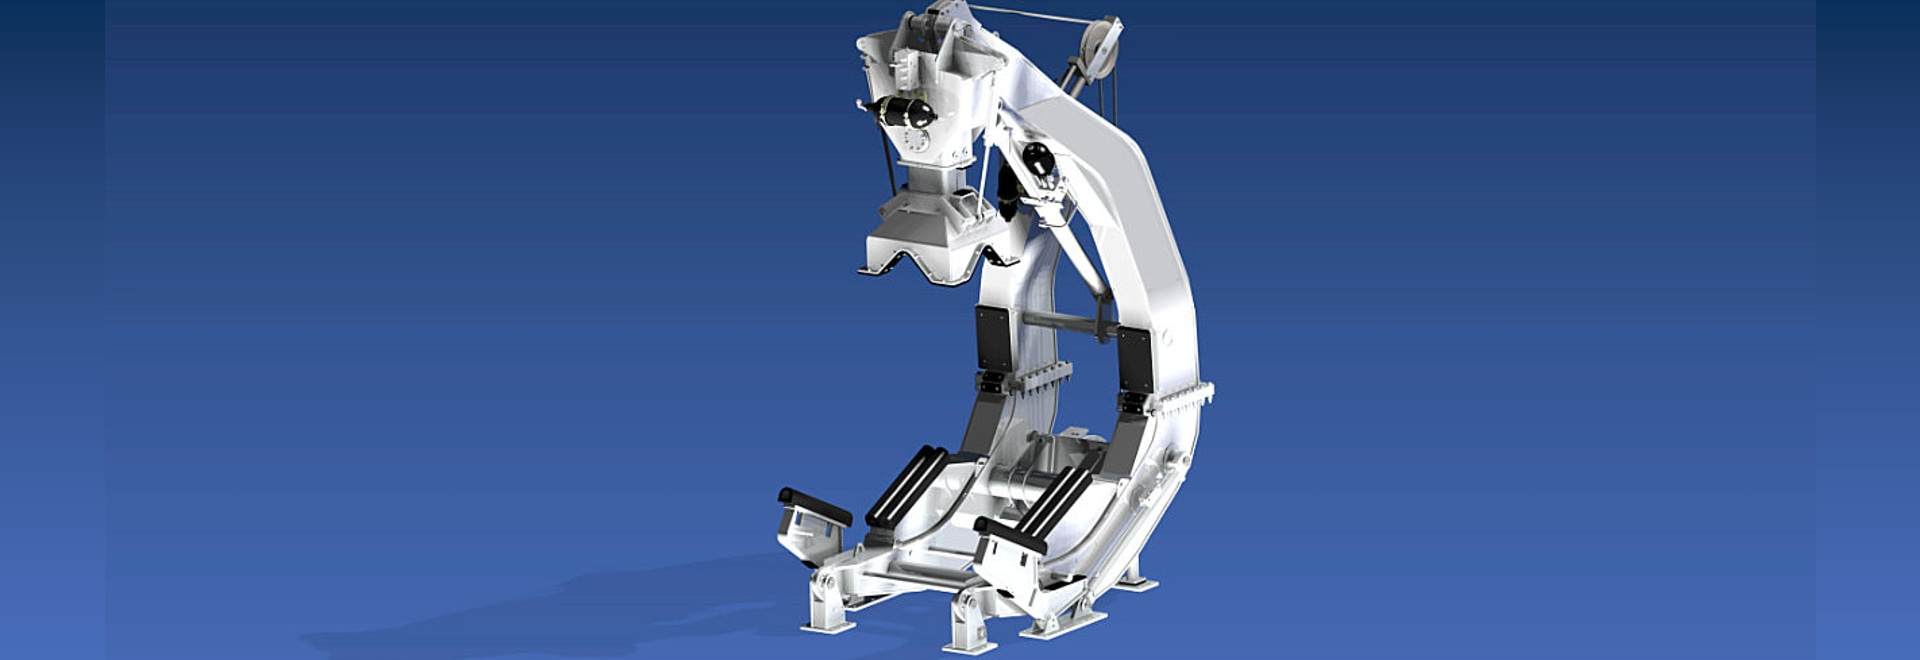 PALFINGER NED-DECK won an order for 12 newly designed davits for the Royal Malaysian Navy